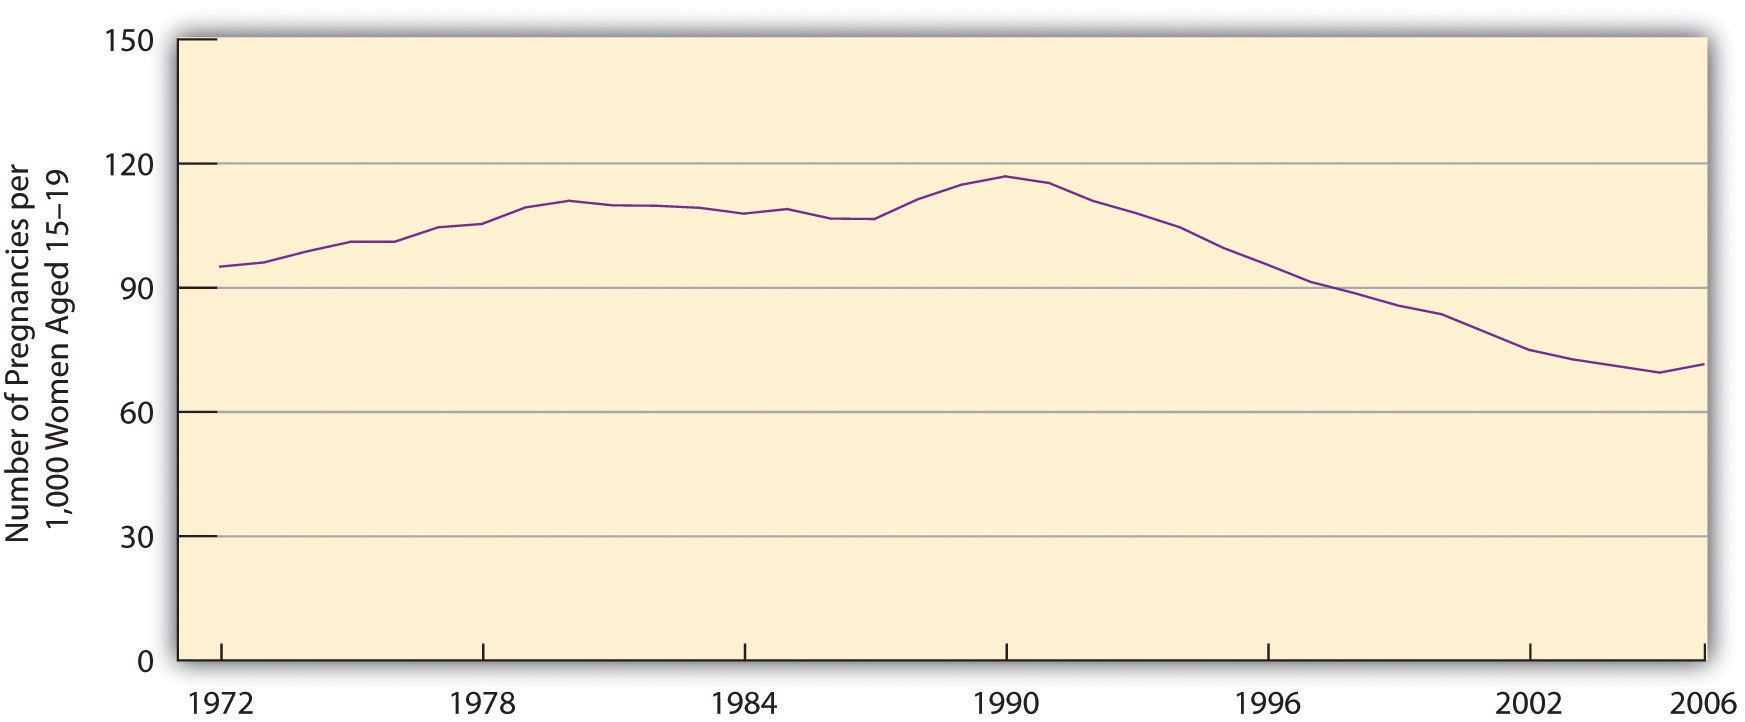 Pregnancy Rates for US Women Aged 15-19 has steadily declined from 1990 to 2006